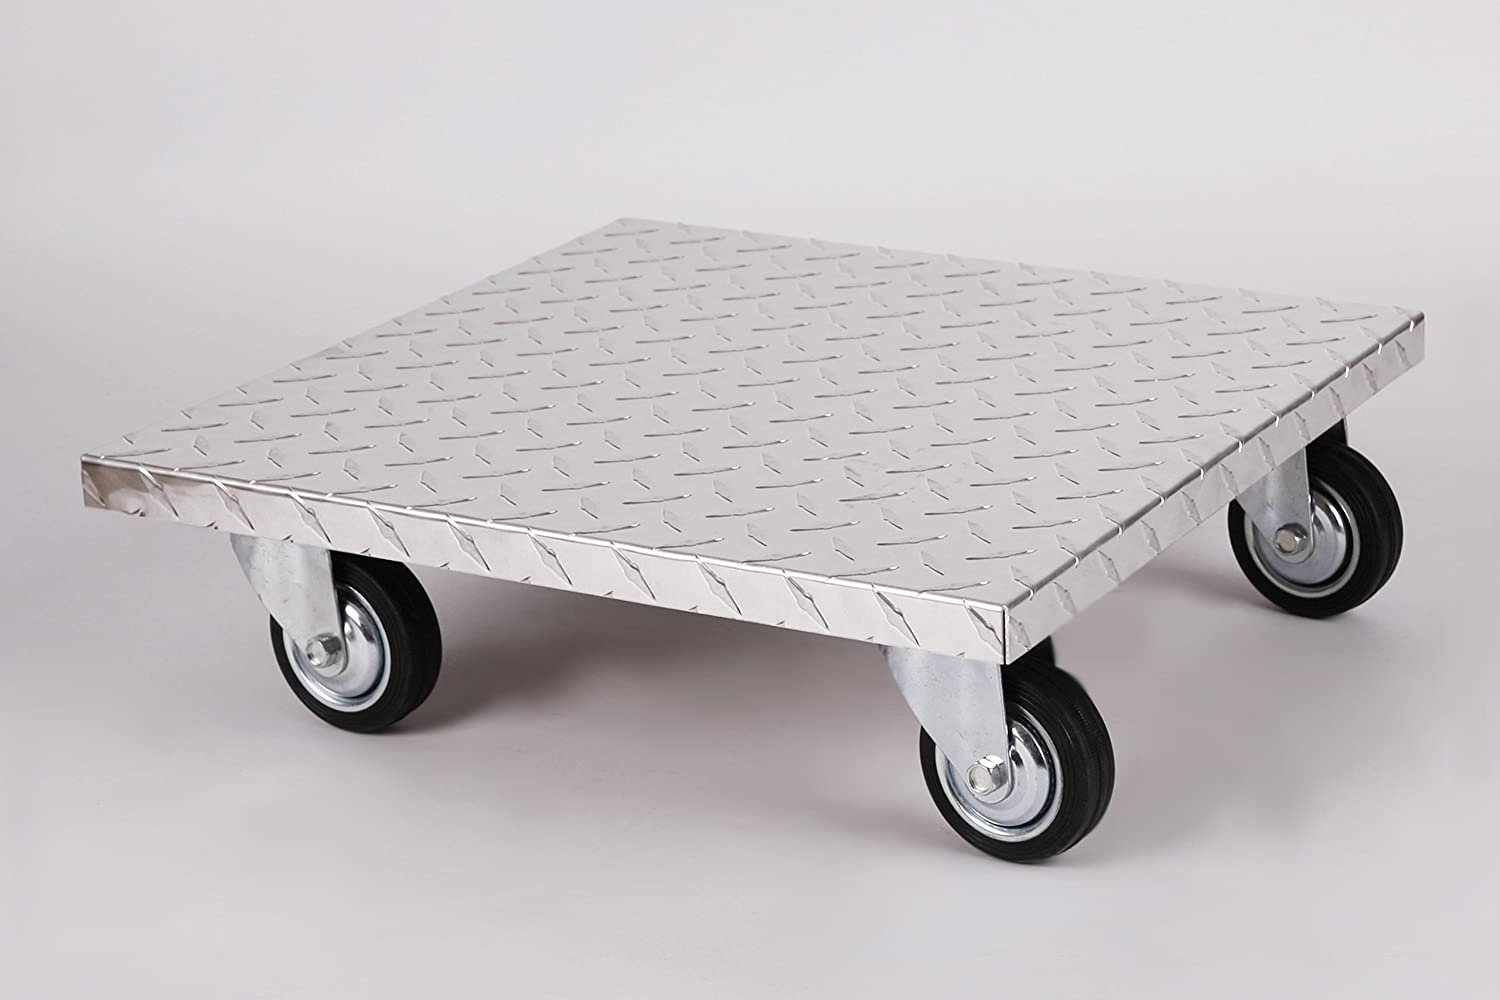 Plant Pot Caddy (Pro) 50x50 cm, ALU, 200kg, large wheels, Brand: Szagato, Made in Germany (Plant Mover, Plant Trolley, Plant Caddy)